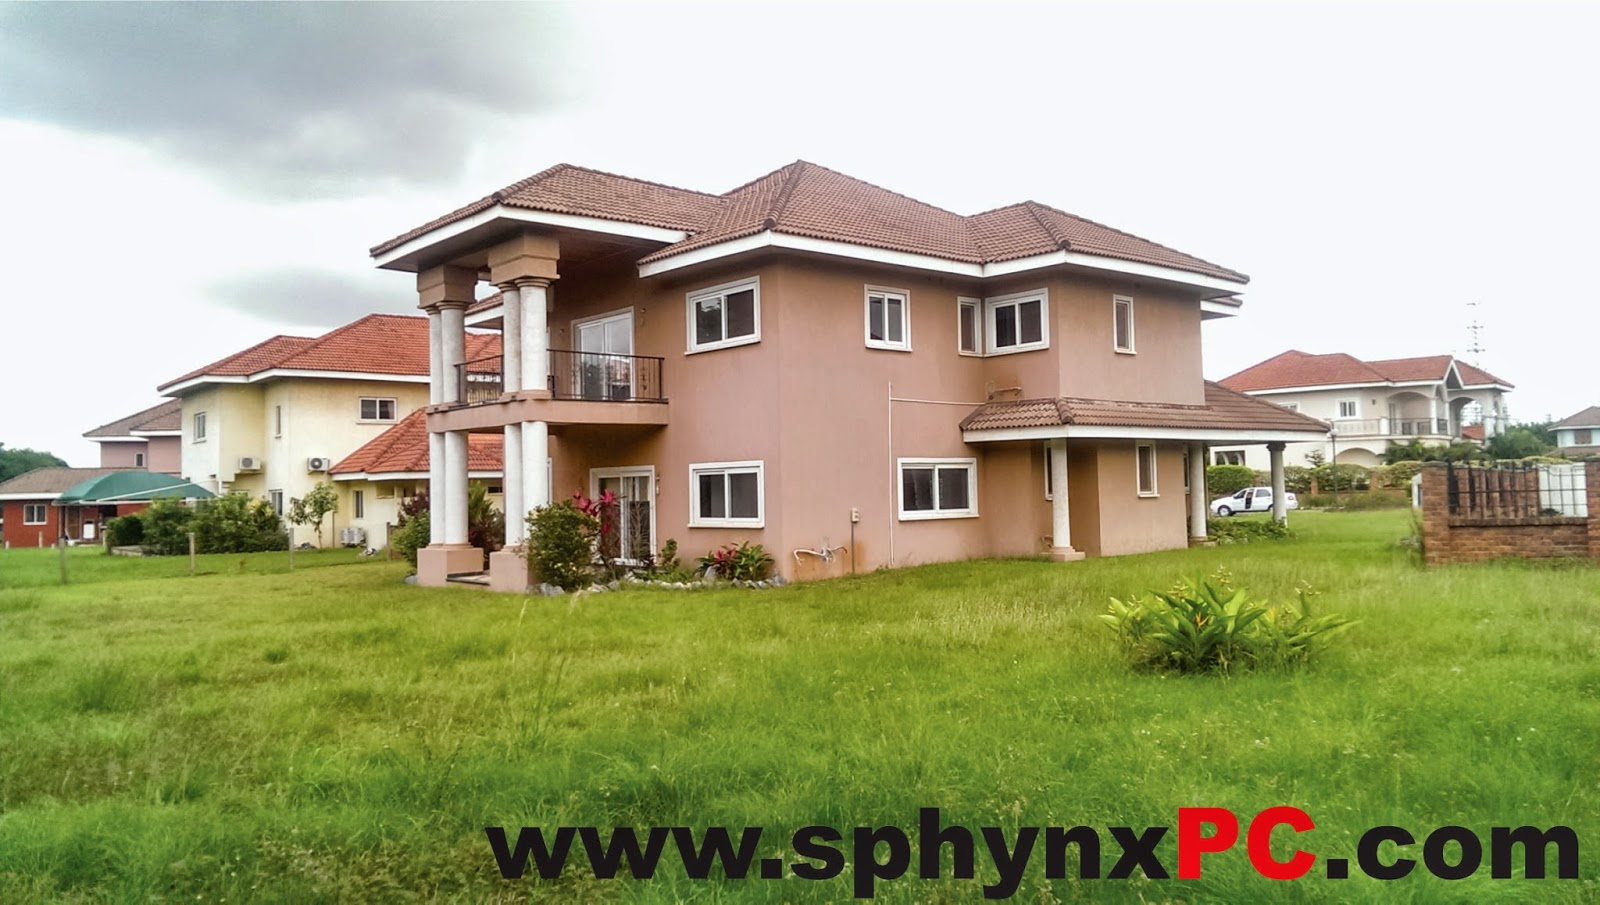 Sphynx house for sale trasacco valley accra ghana for Big houses for low prices